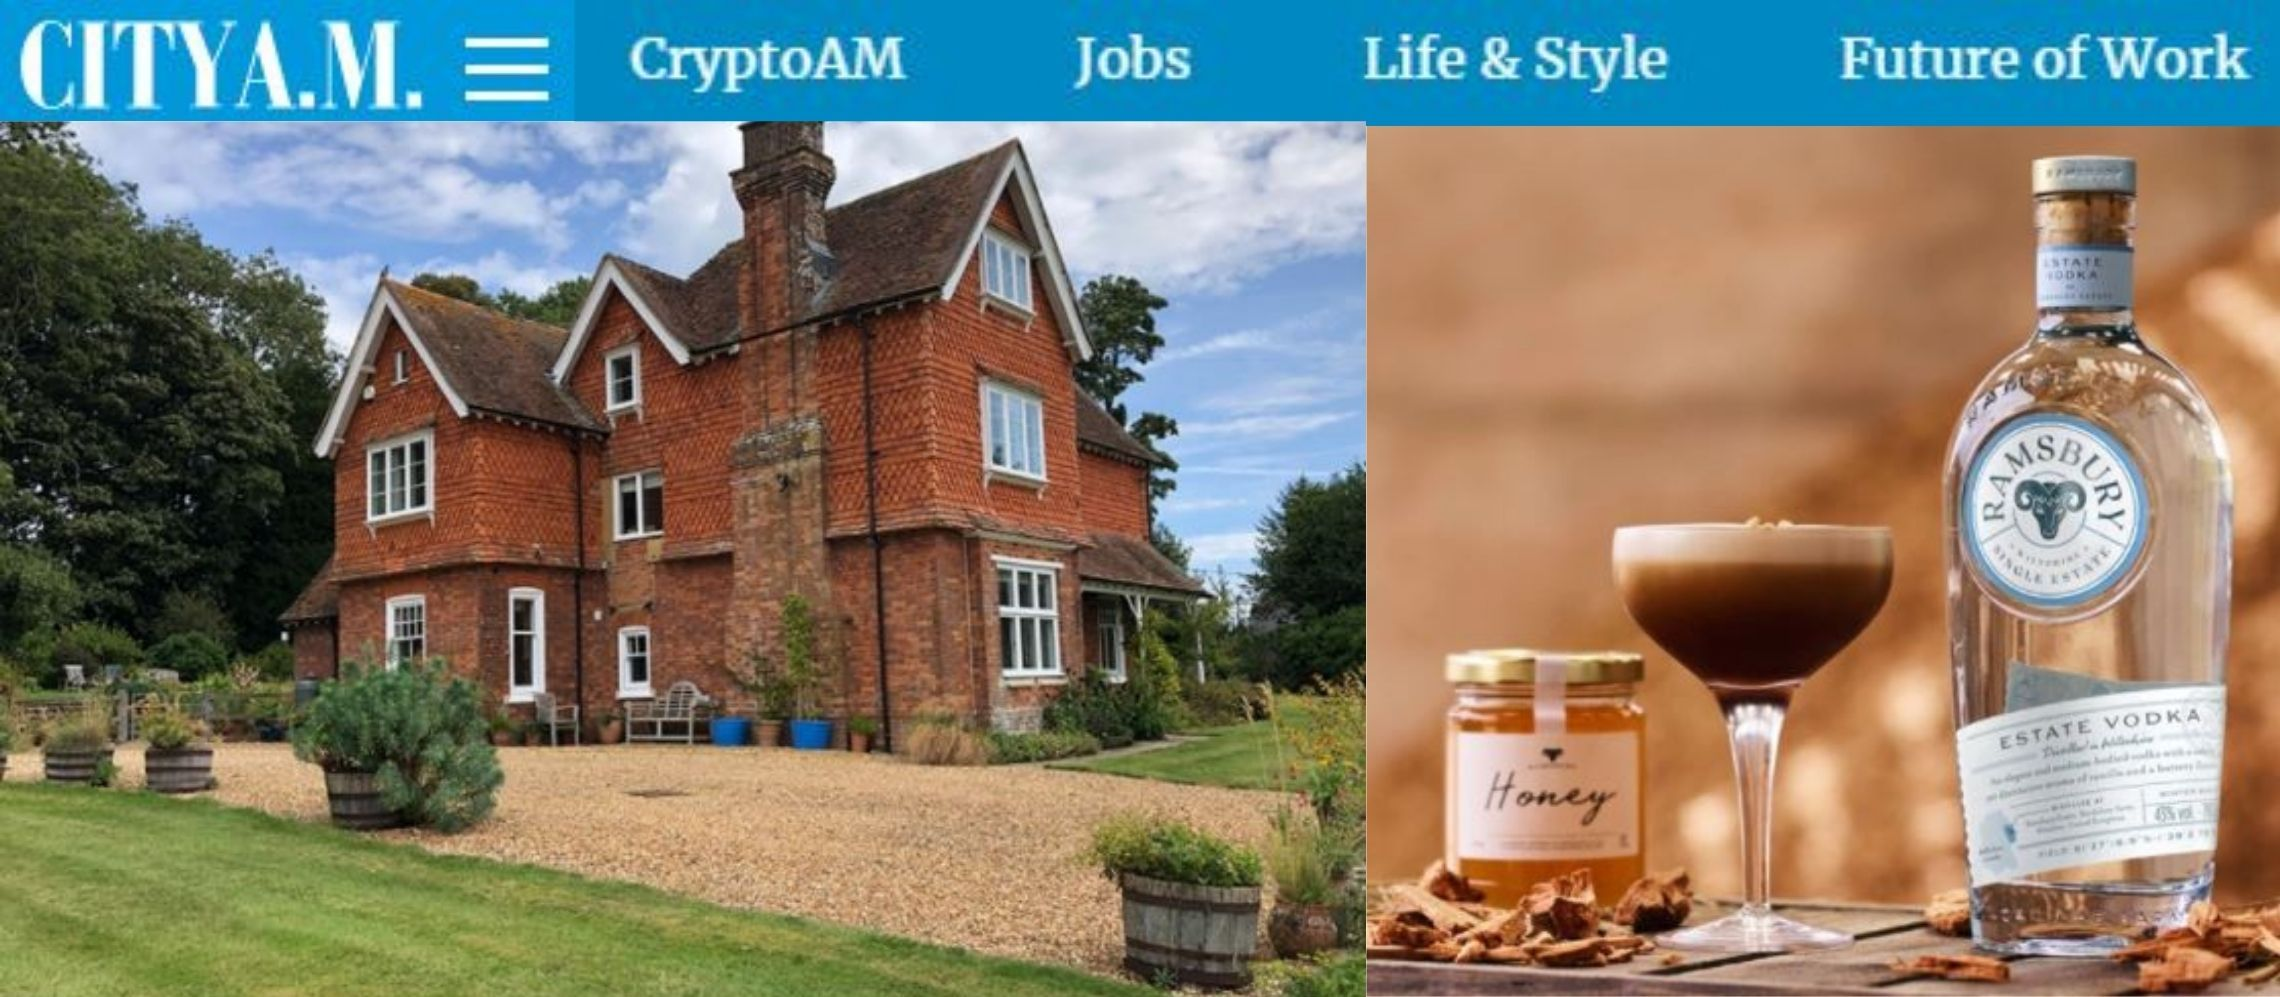 Photo for: Ramsbury Estate beats Russia and the US to win top vodka prize via Cityam